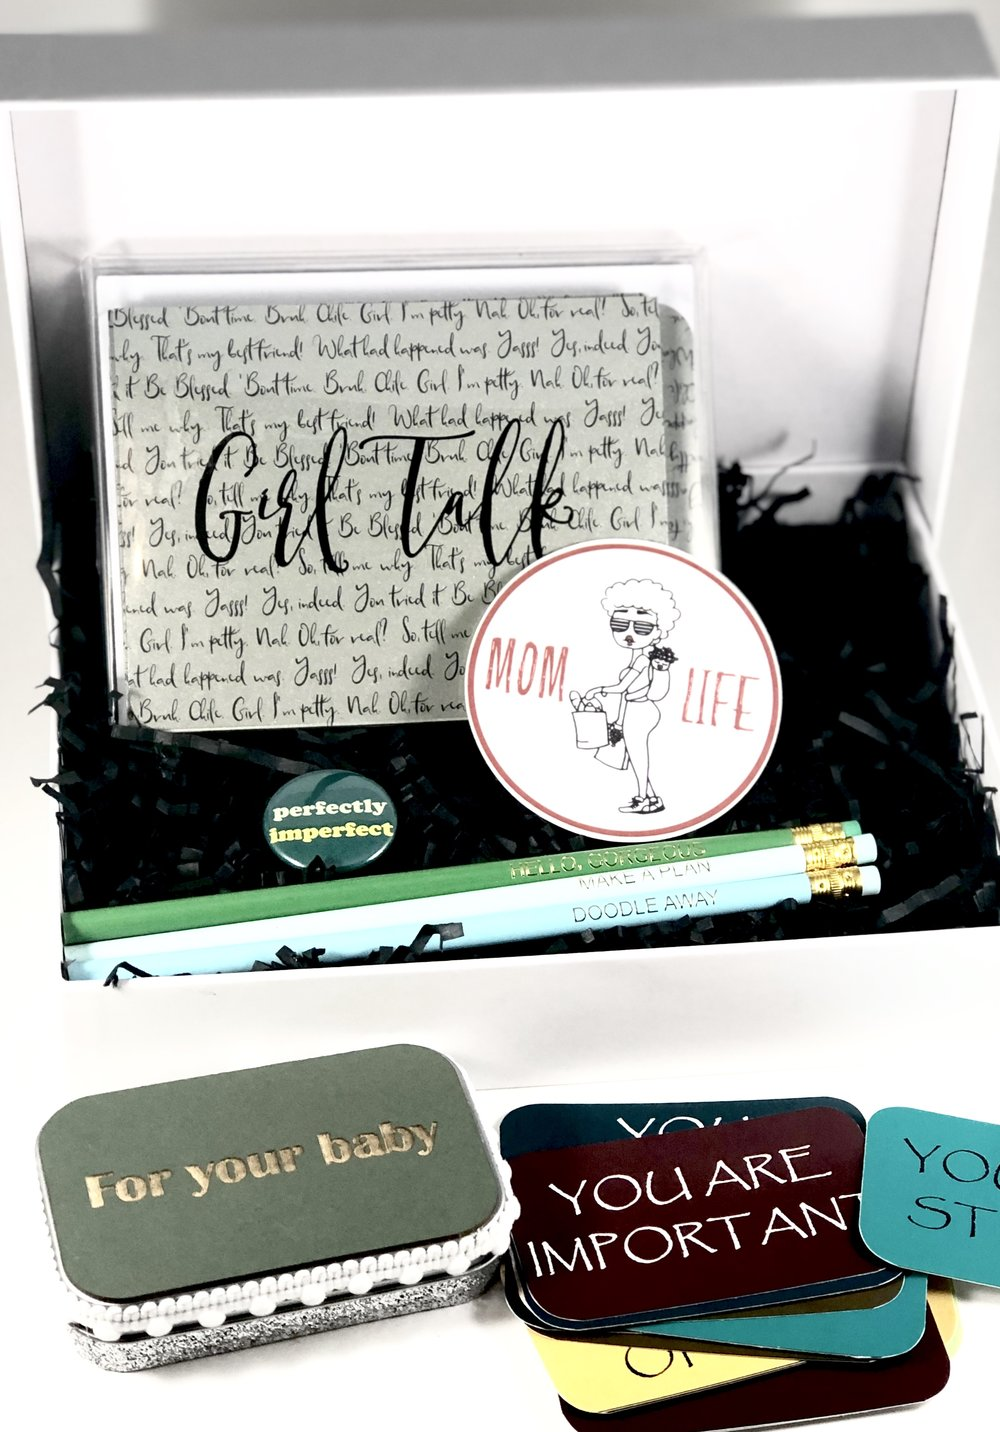 MikMont Creations custom gift pack with card, pencils, affirmation tin with laser etch lid